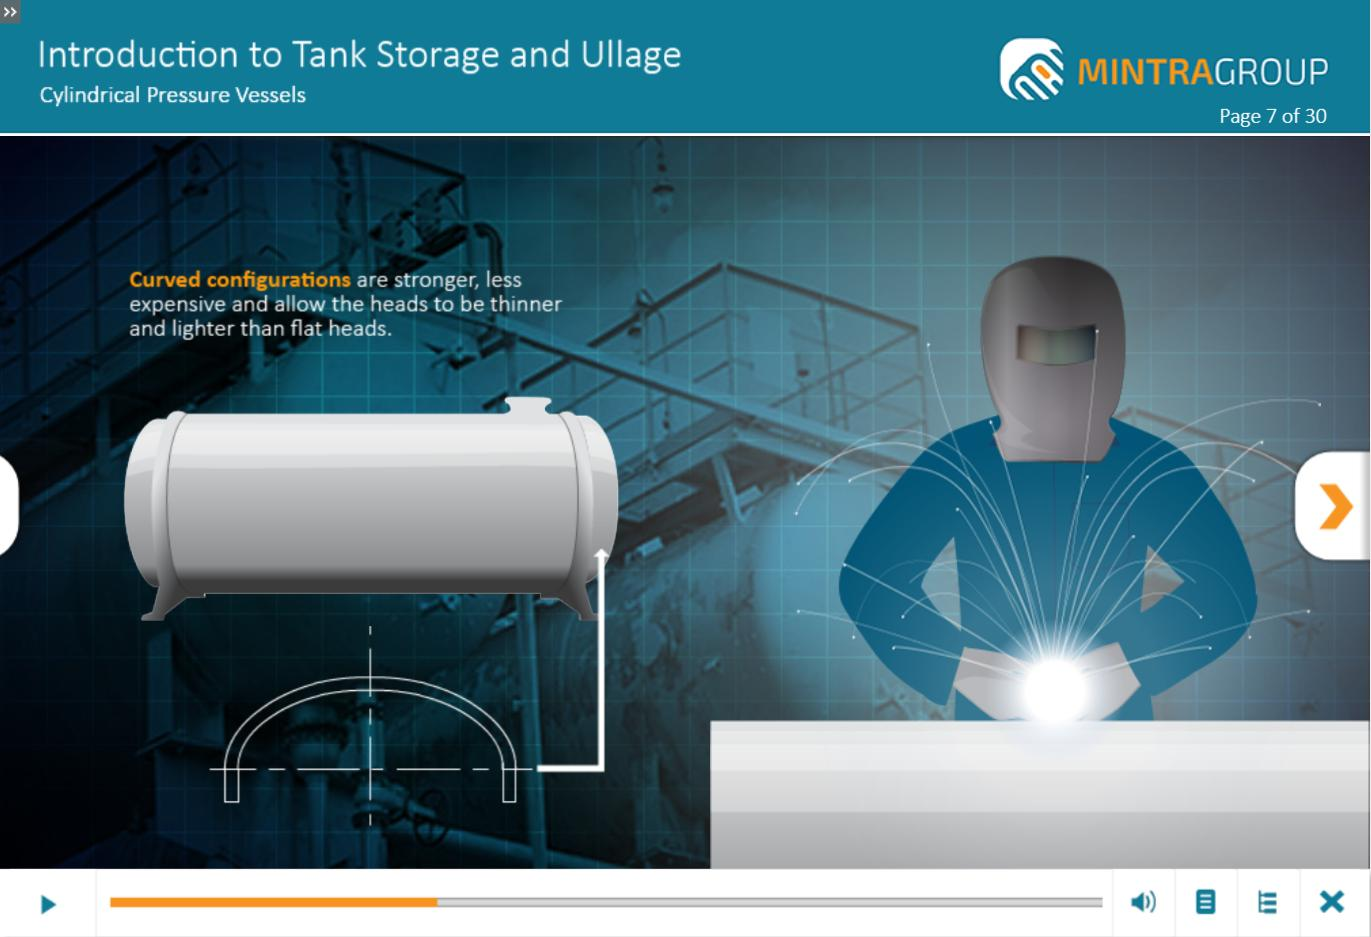 Introduction to Tank Storage and Ullage Training 5